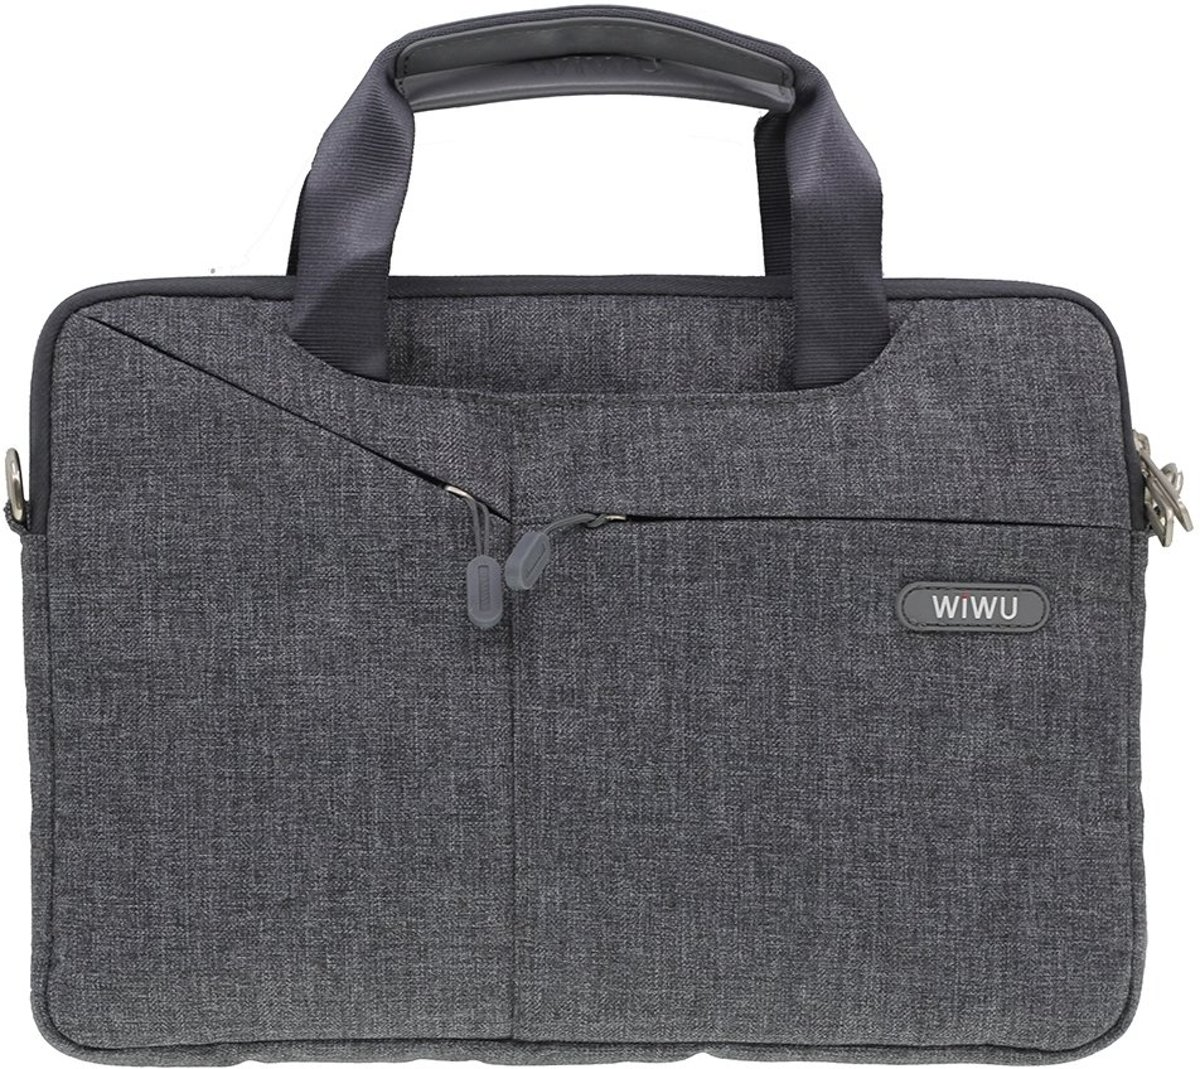 WiWu - 11.6 inch Laptoptas - Elite Grijs